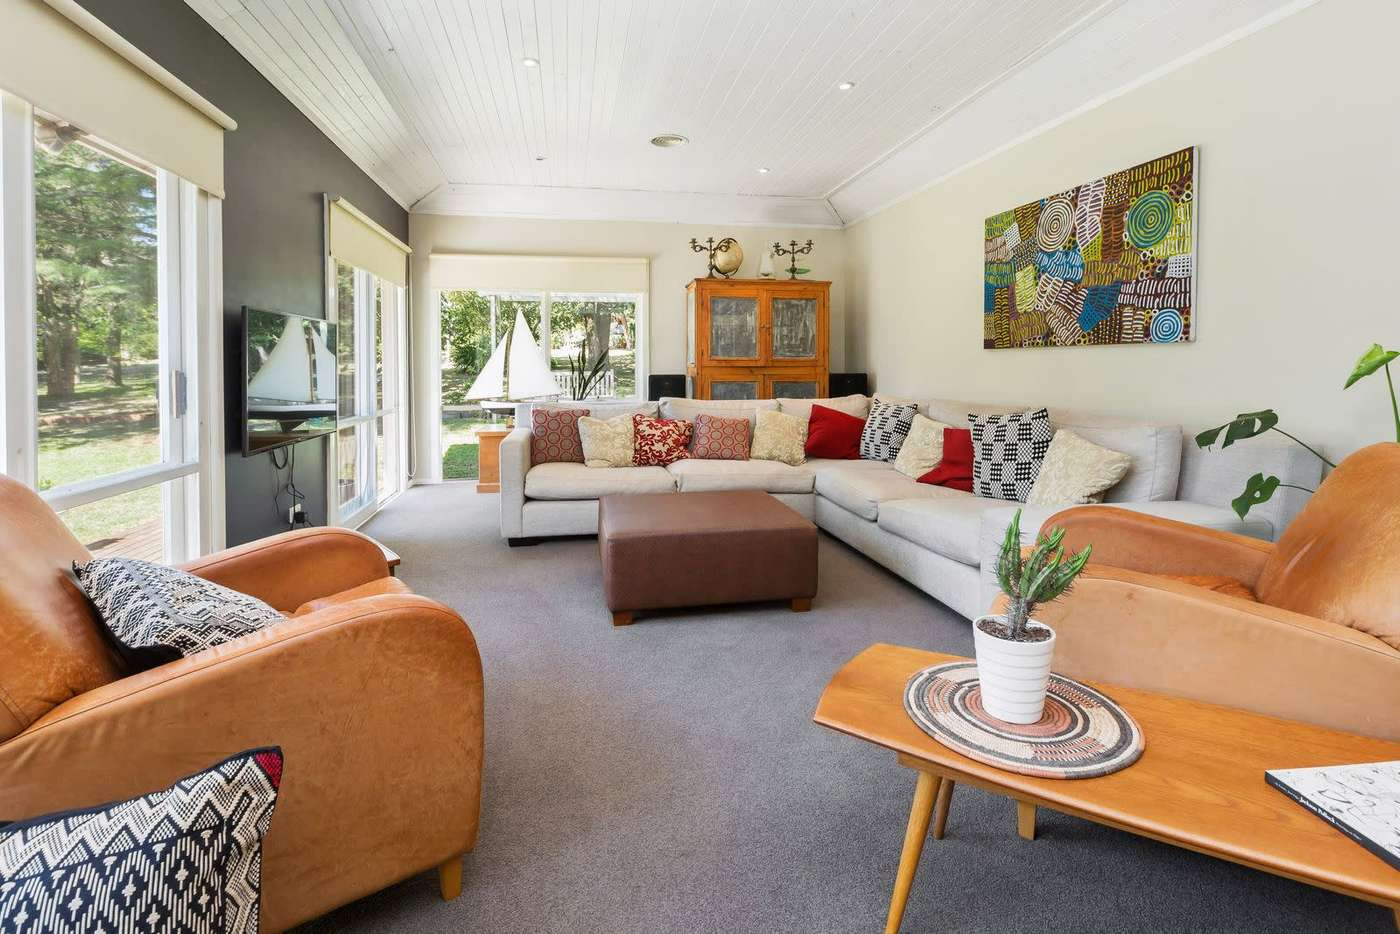 Fifth view of Homely house listing, 11 Baroona Street, Mornington VIC 3931